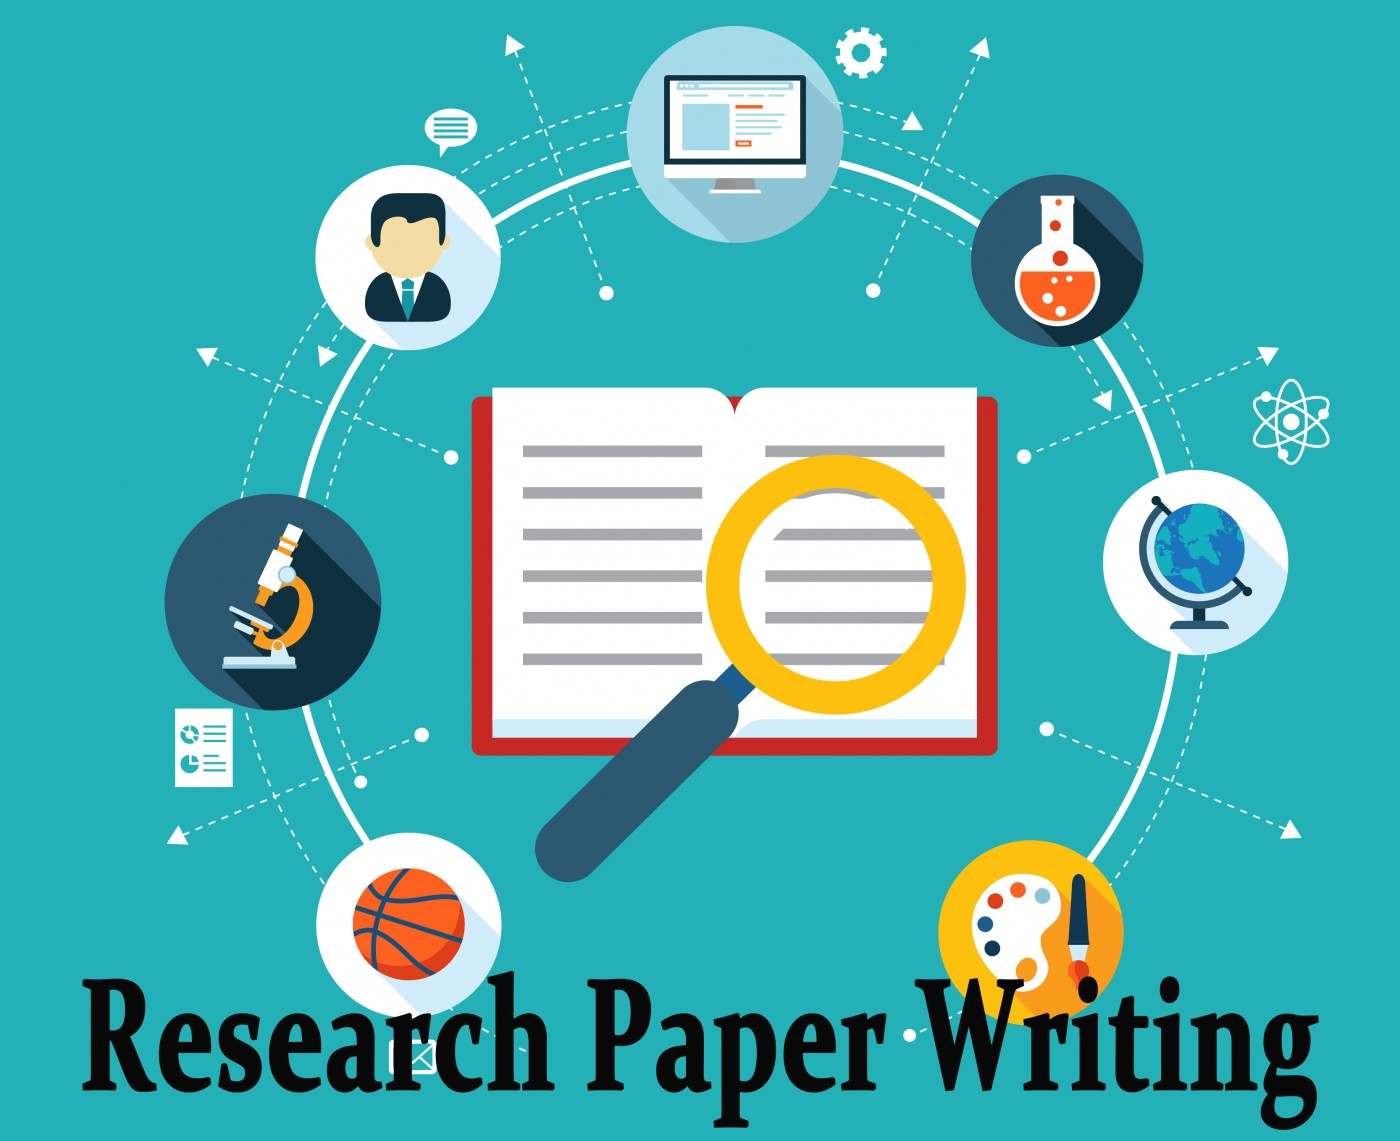 015 Research Paper 503 Effective Striking Writing Meme Papers A Complete Guide 15th Edition Pdf Free 16th 1400